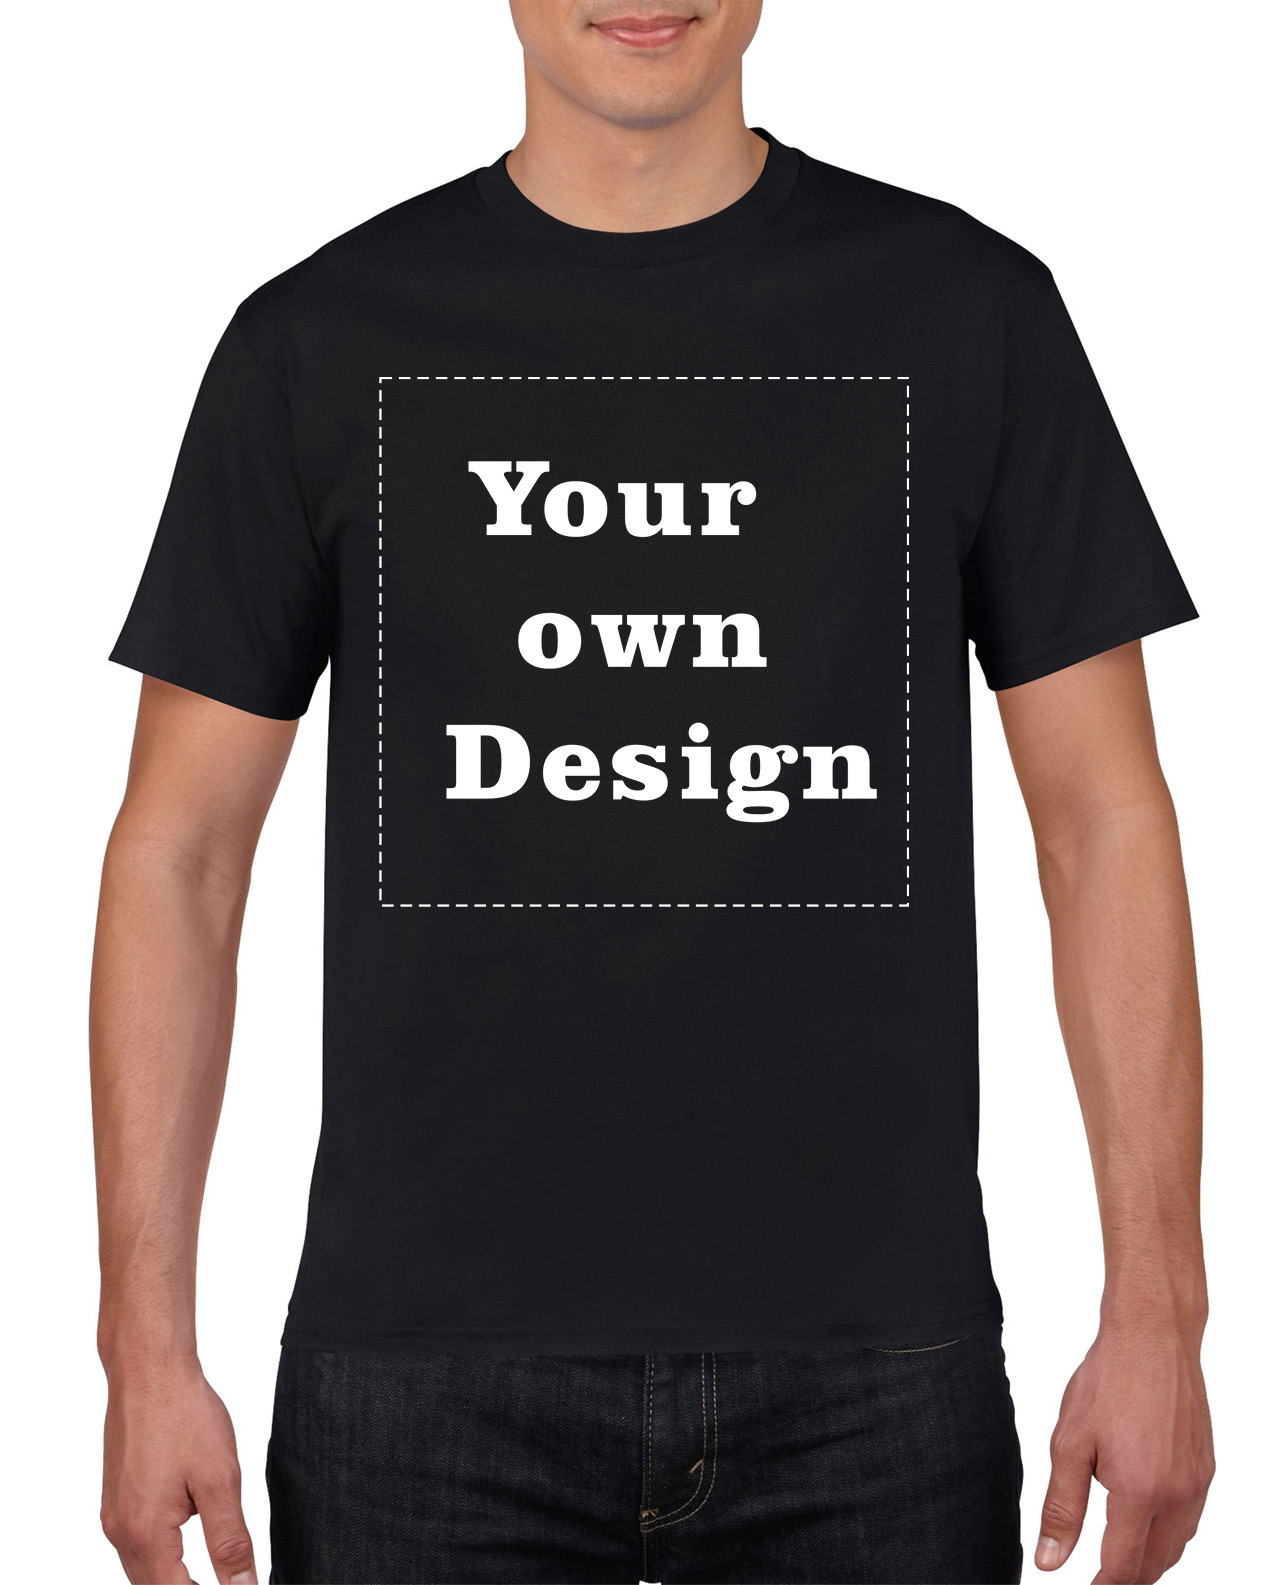 Design your own t shirt virtual - Design Your Own T Shirt Virtual Compare Prices On Shirt Own Print Online Shopping Buy